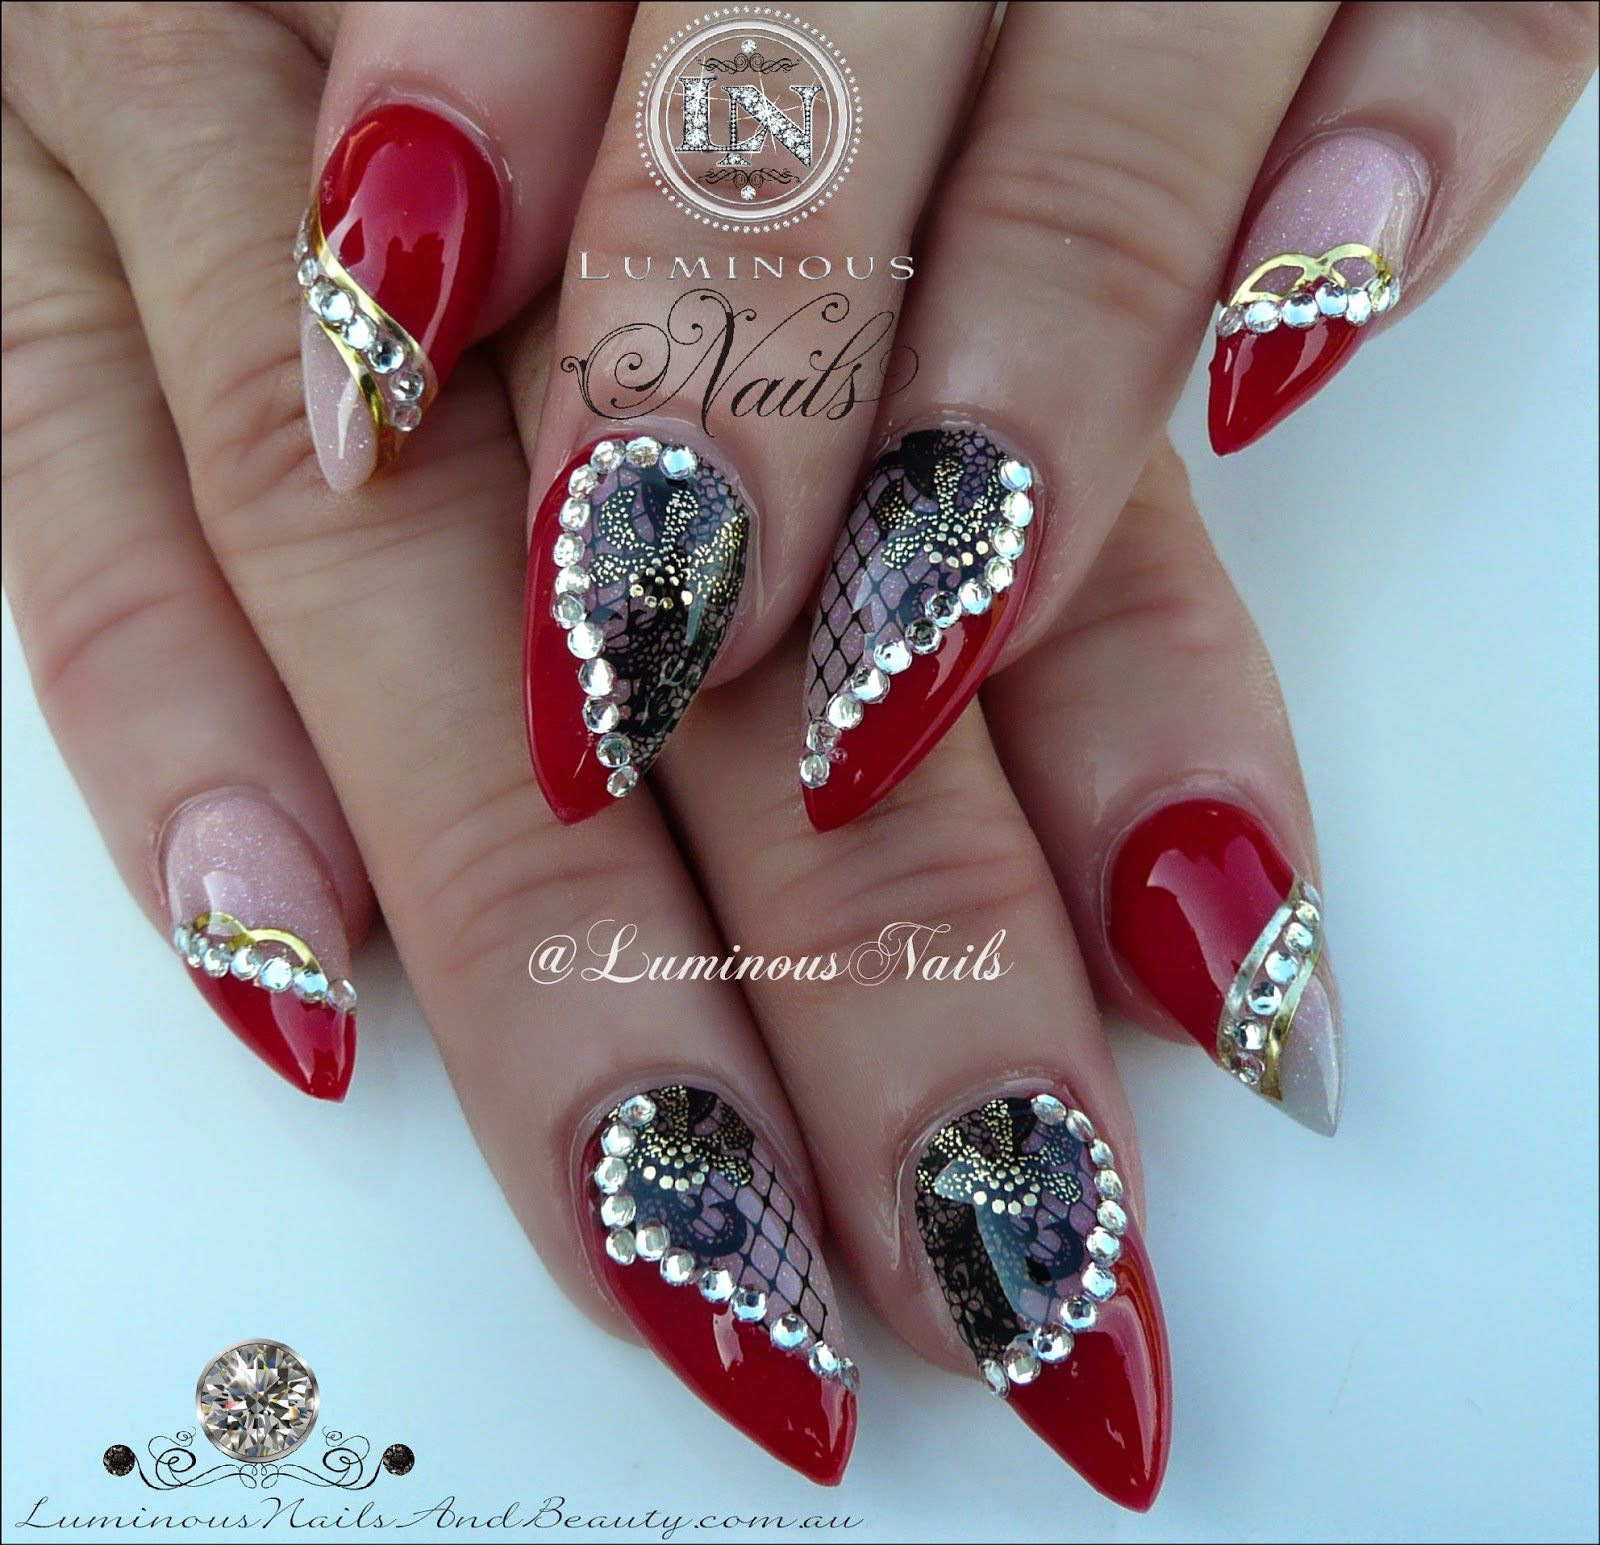 The Nail Art designs are priced at $5 a design. Description from ...